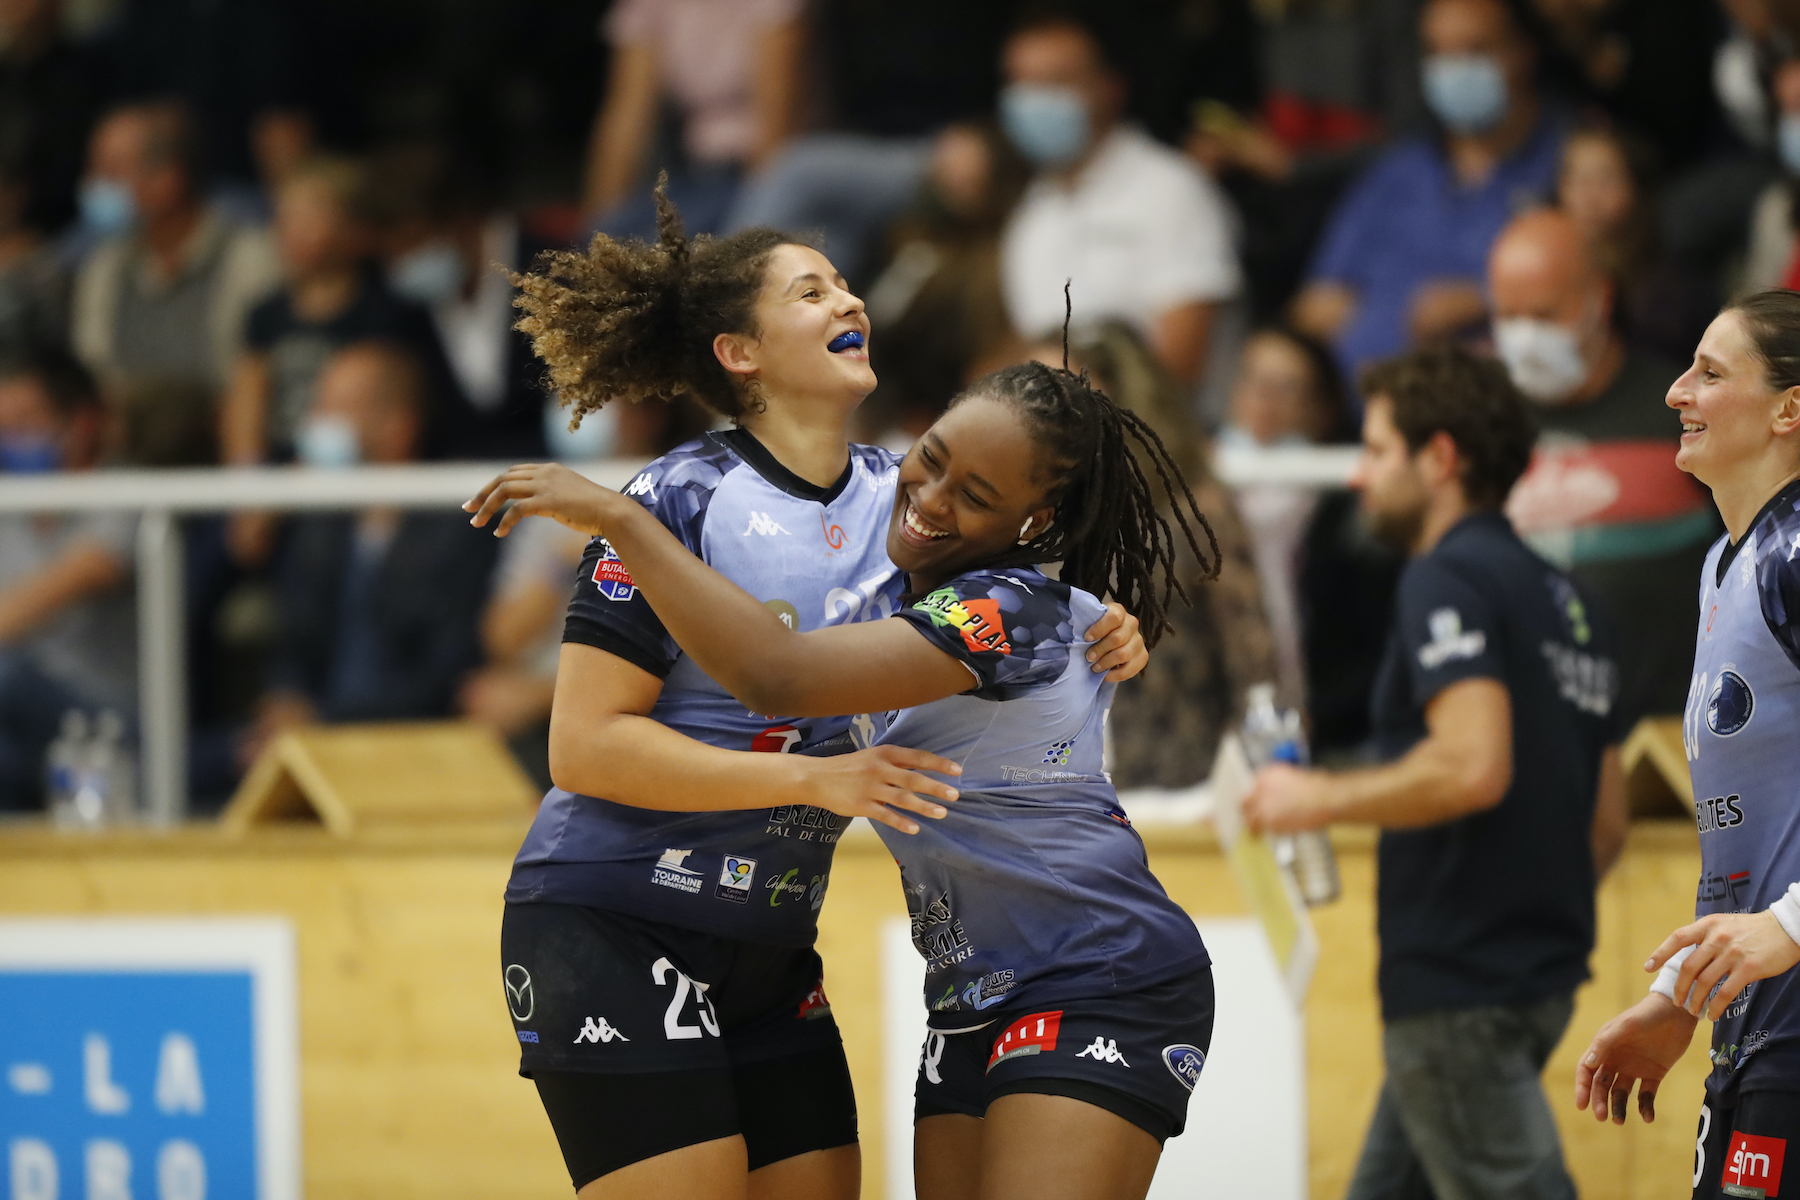 HANDBALL : Bourg de Peage Drome Handball vs Chambray Touraine Handball - J03 - Ligue Butagaz Energie - 26/09/2020